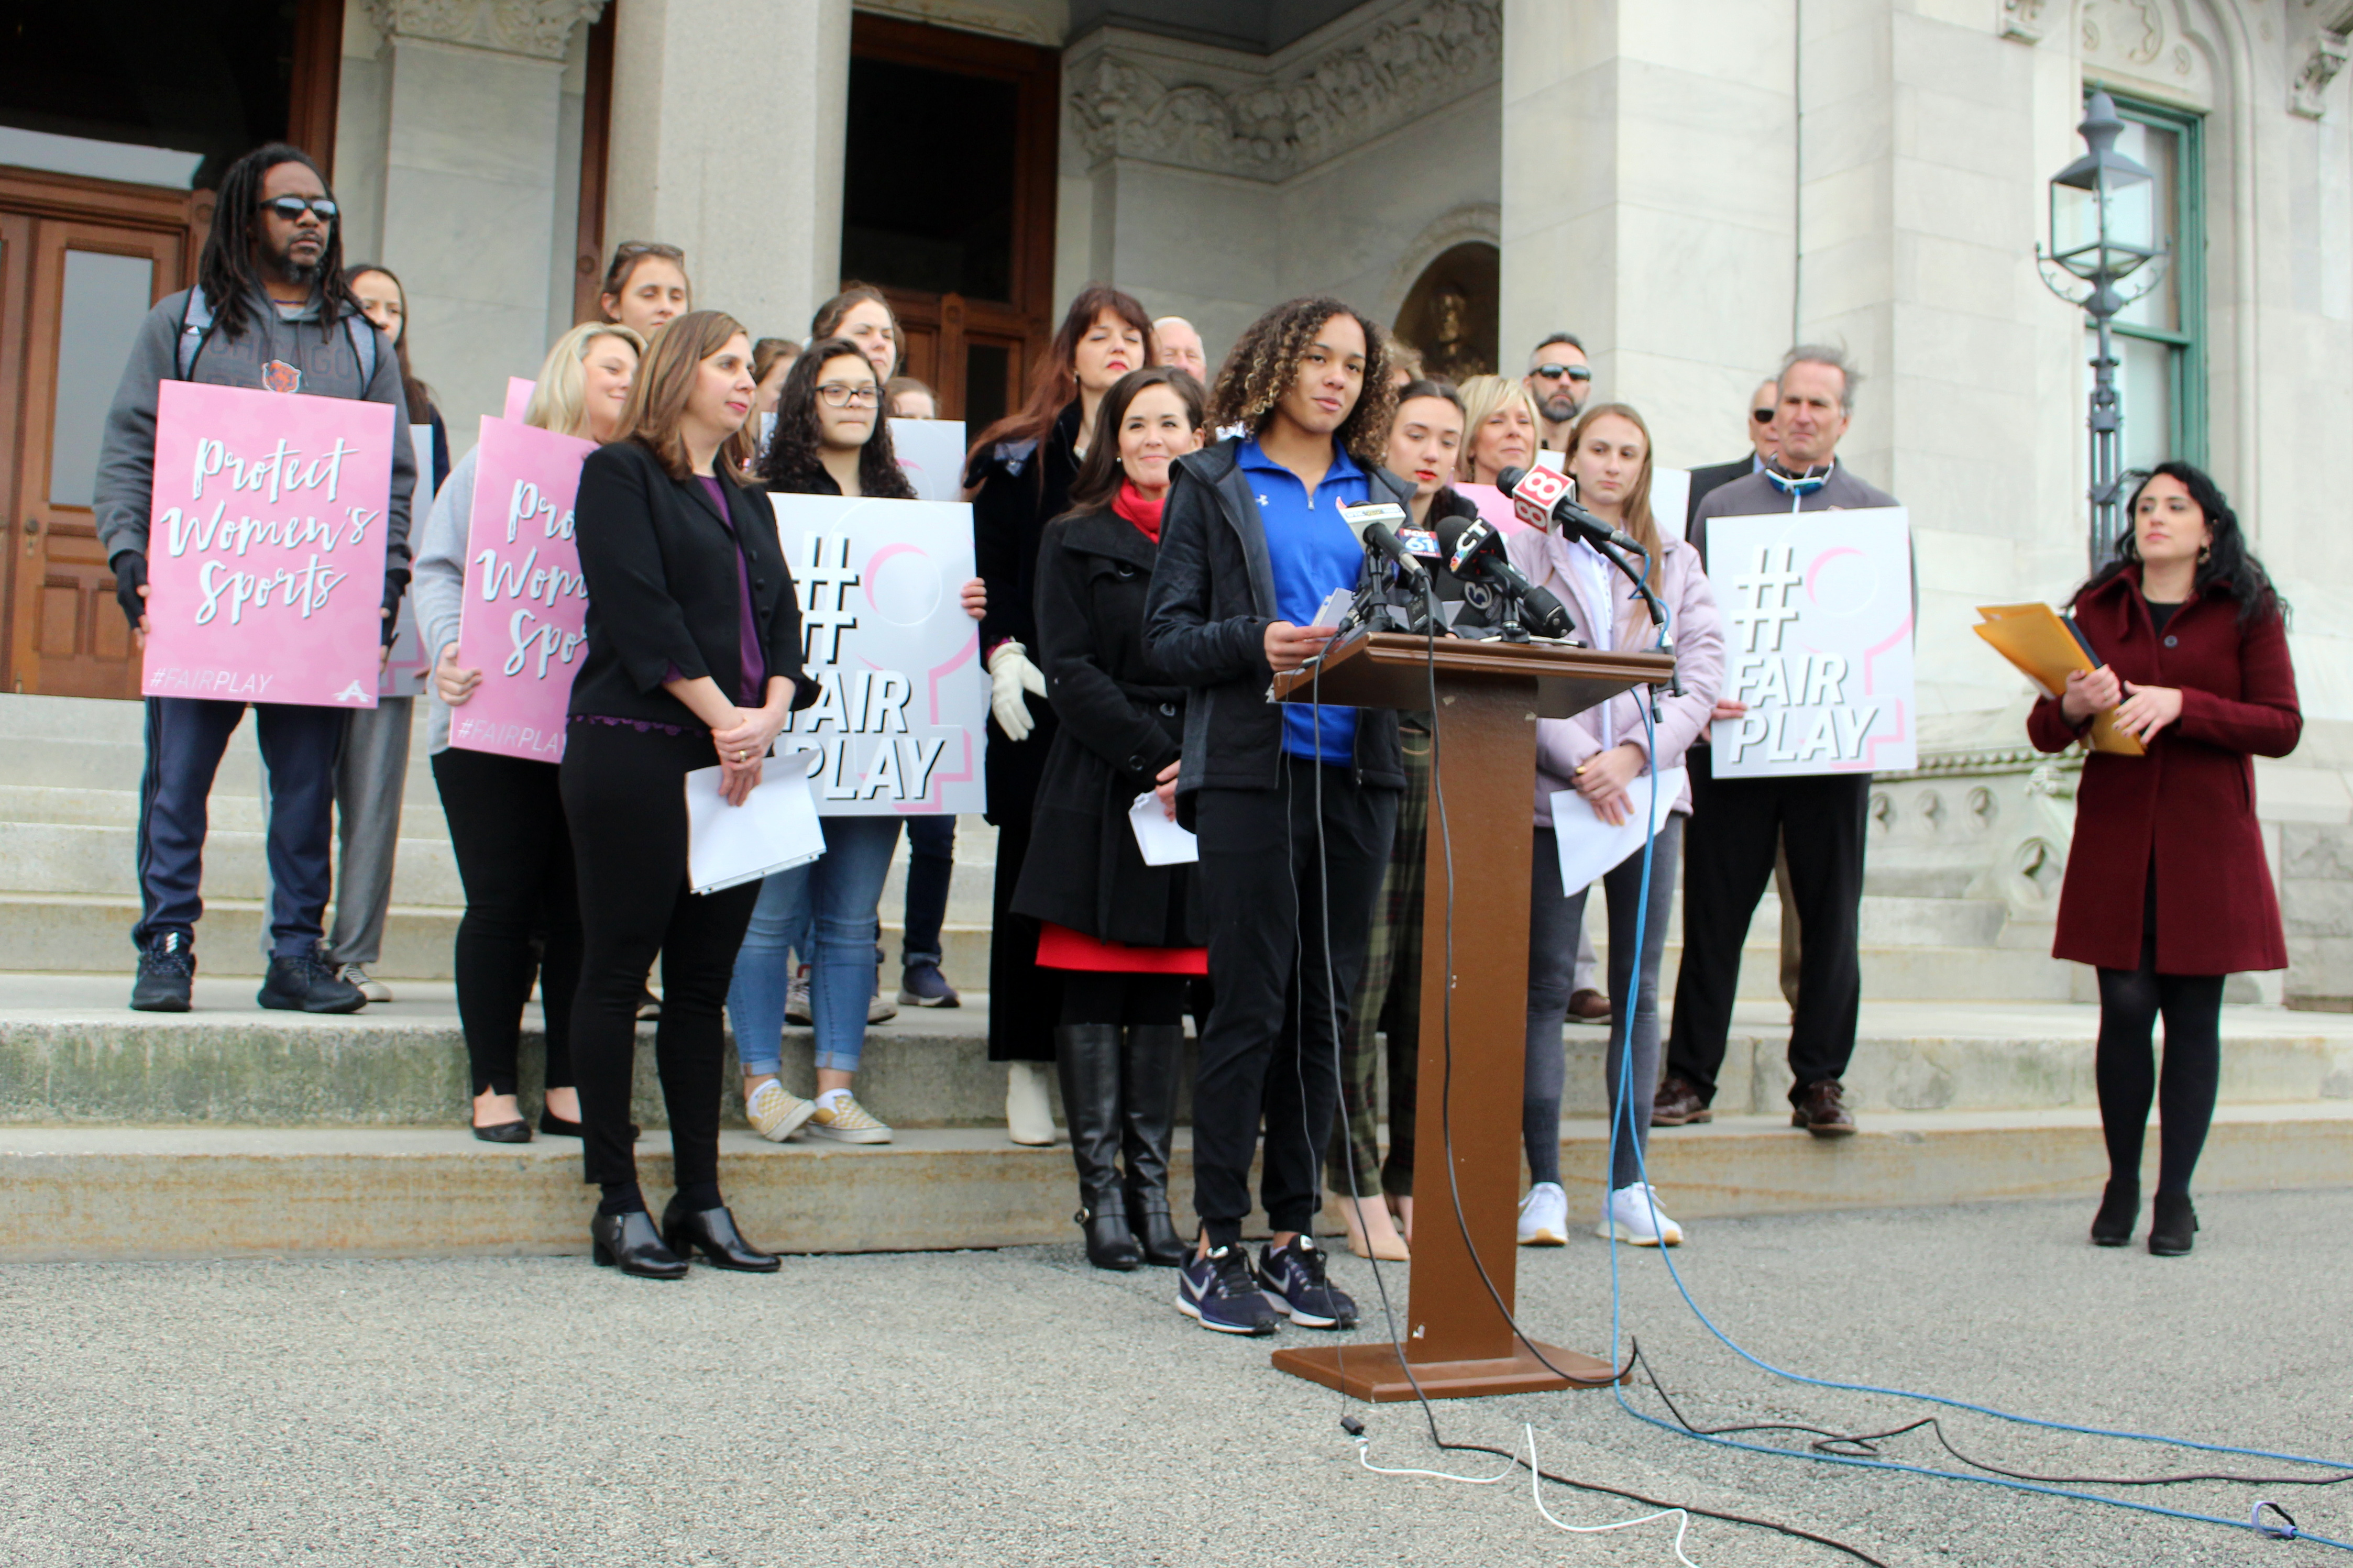 Danbury High School sophomore Alanna Smith speaks during a news conference at the Connecticut State Capitol in Hartford, Conn., Wednesday, Feb, 12, 2020. Smith, the daughter of former Major League pitcher Lee Smith, is among three girls suing to block a state policy that allows transgender athletes to compete in girls sports.